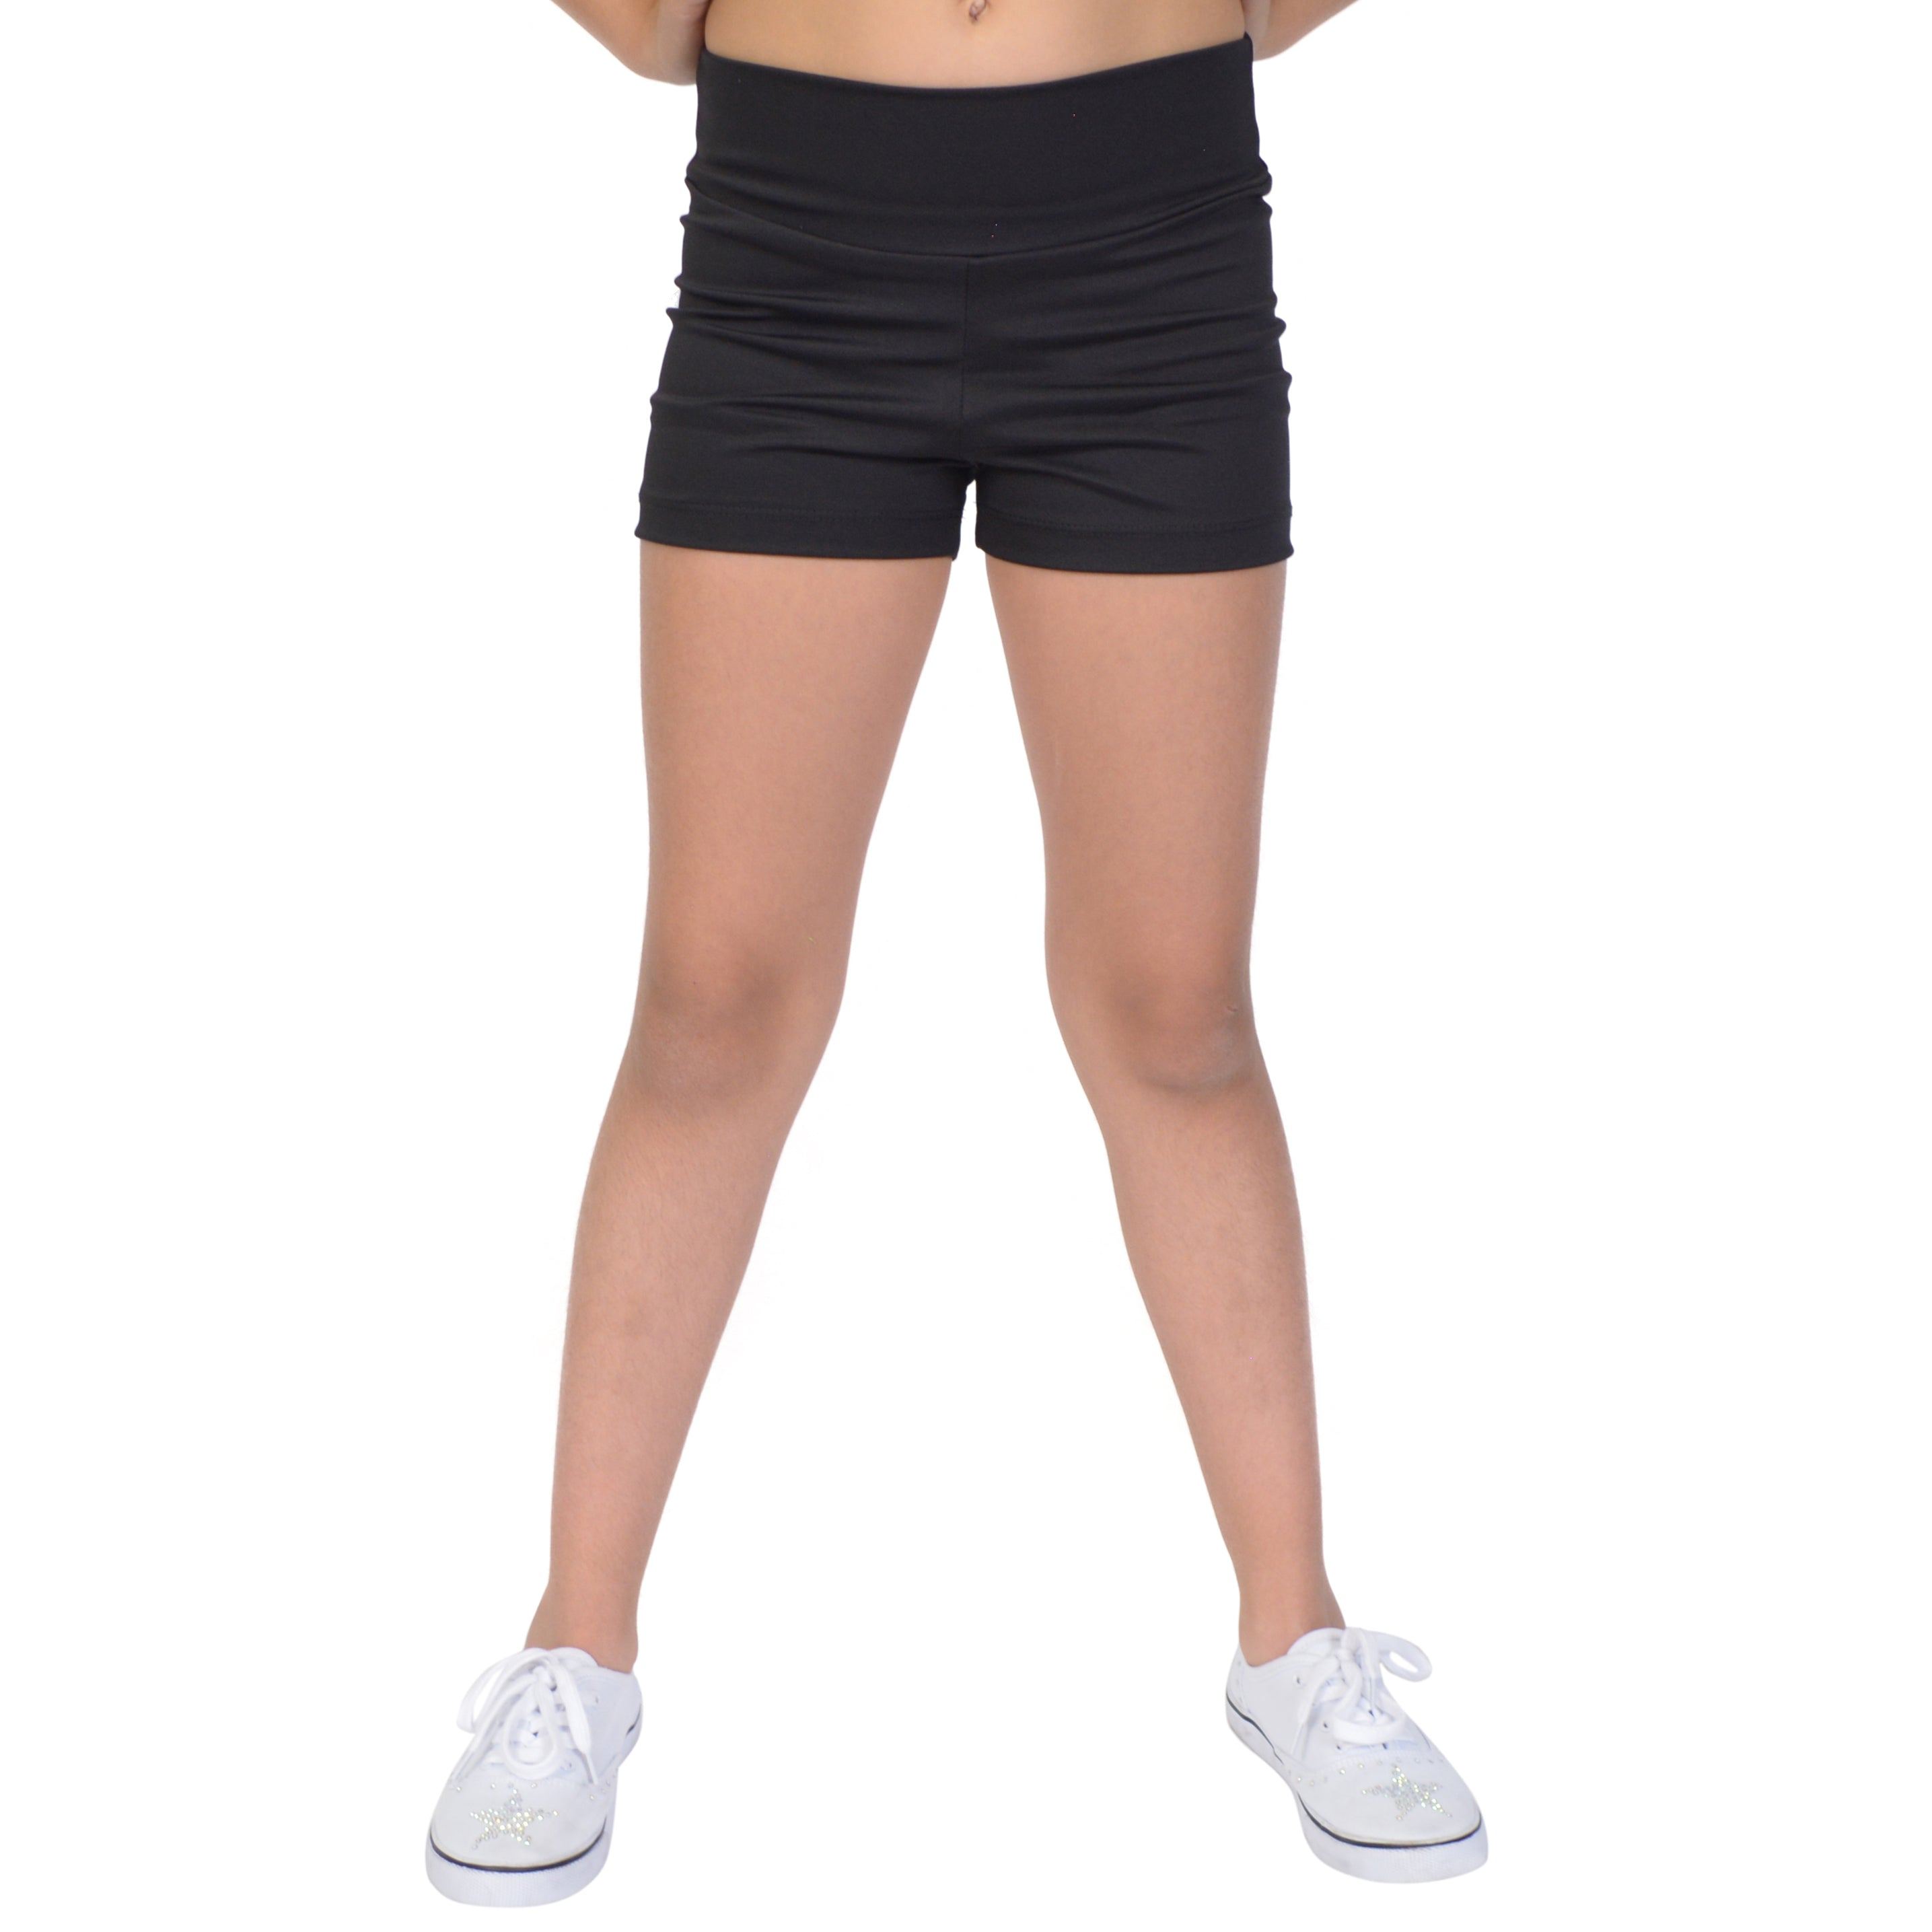 Girl's Stretch Performance High Waist Athletic Booty Shorts